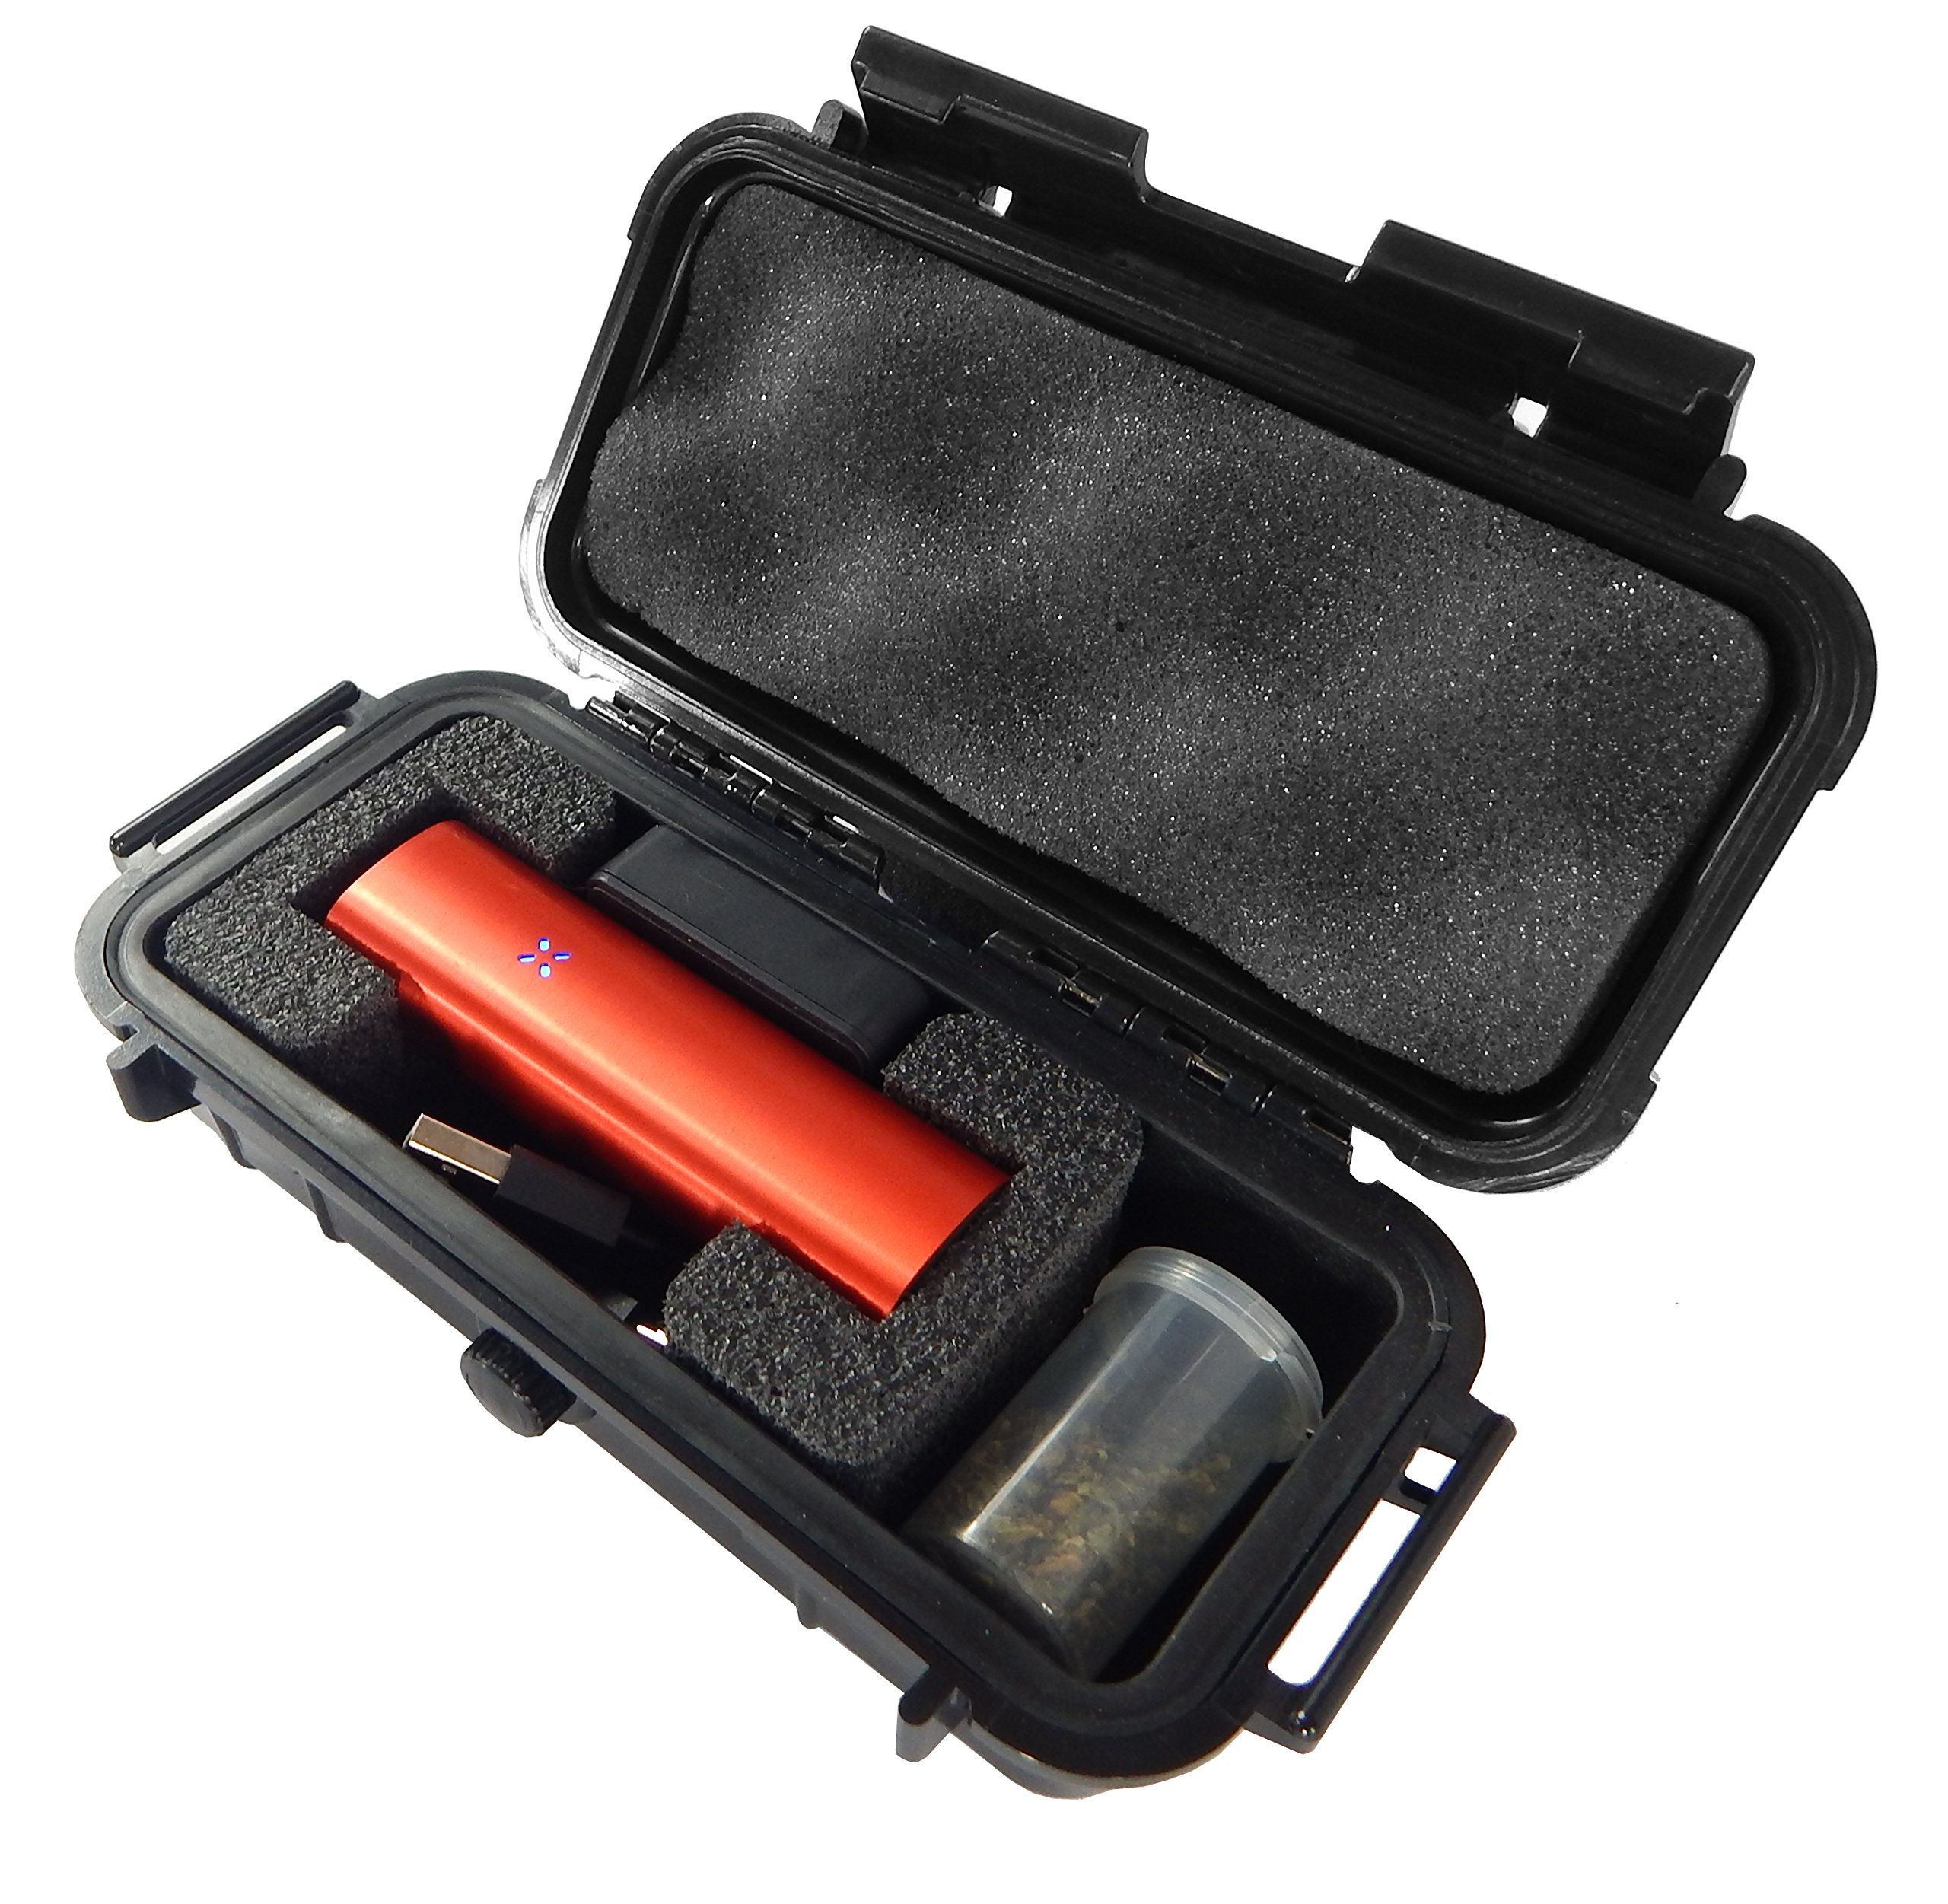 CLOUD/TEN Pax 2 and Pax 3 Custom Case - Smell Proof Odor Resistant Protective Airtight Carry Box - Foam Specially Designed to Hold Pax 2 , Charger and Container Slot - Comes with Free Herb Canister